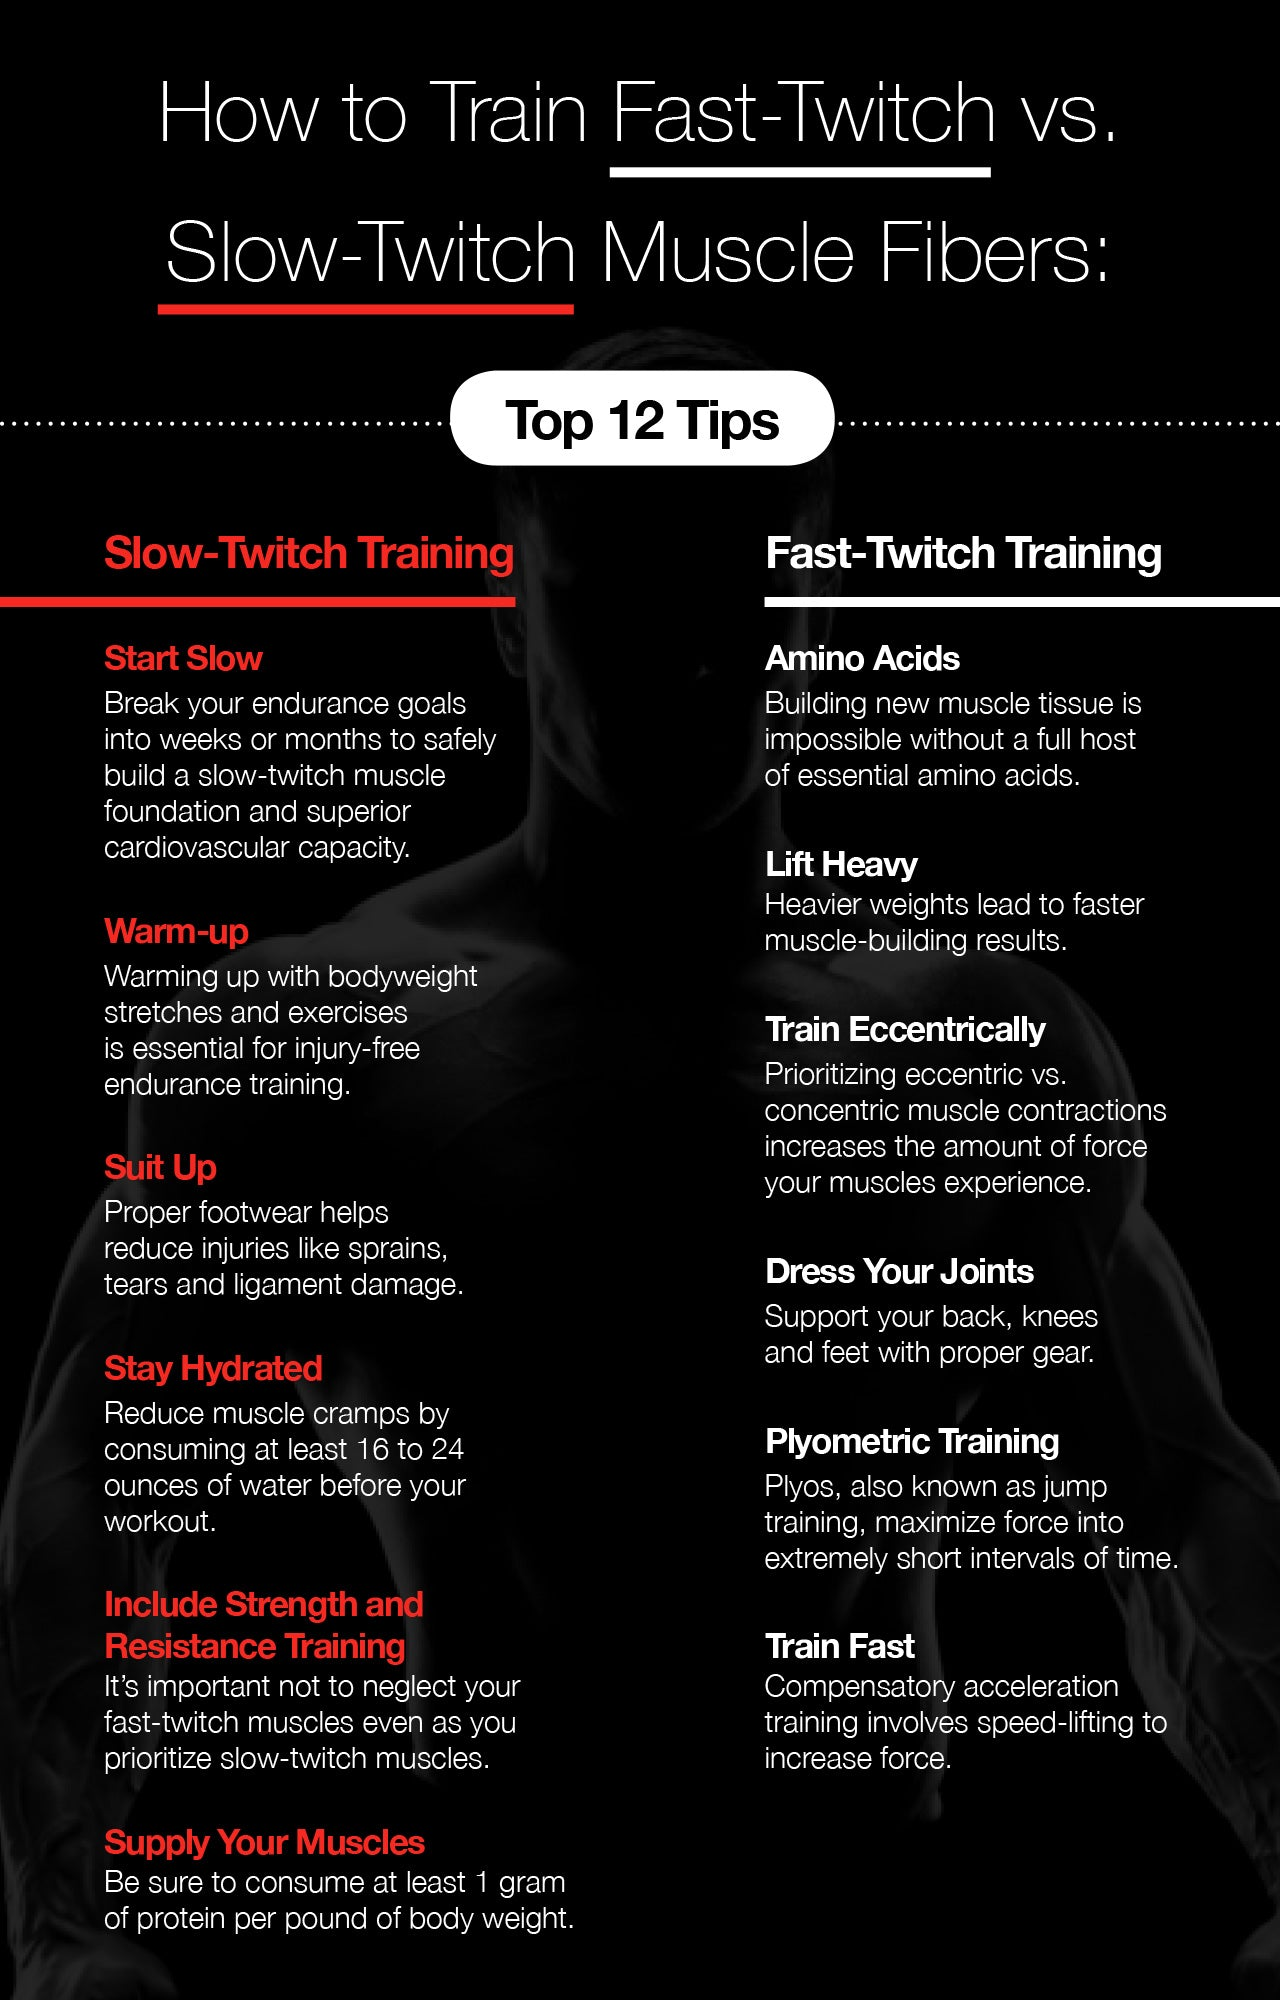 How to Train Fast-Twitch vs. Slow-Twitch Muscle Fibers: Top 12 Tips